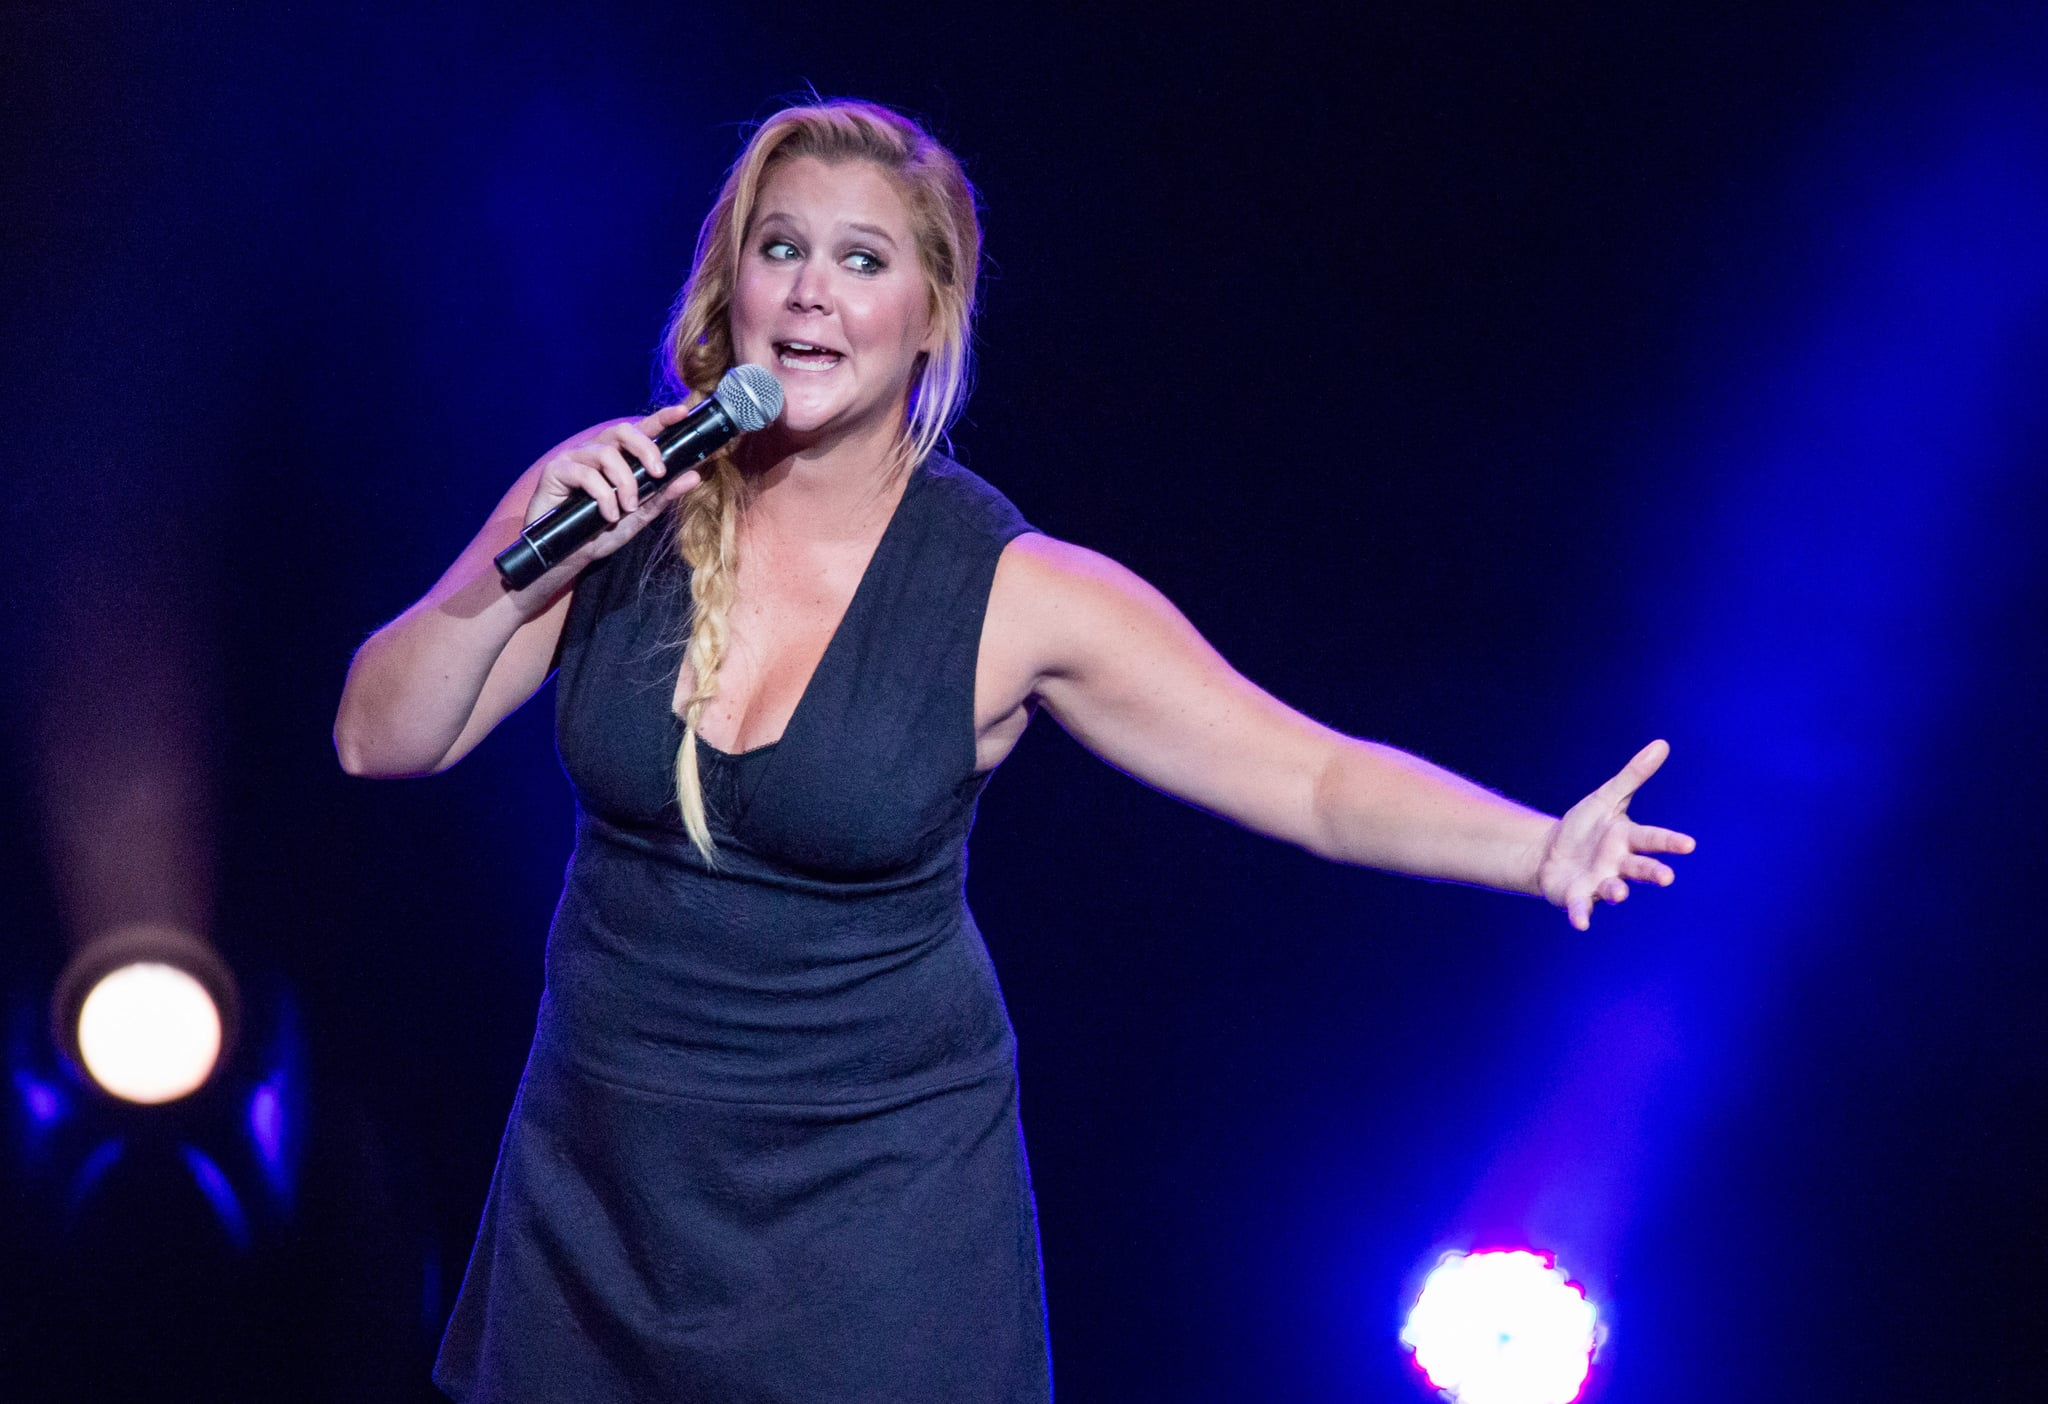 CLARKSTON, MI - AUGUST 30:  Comedian Amy Schumer performs during the Oddball Comedy And Curiosity Festival at DTE Energy Music Theater on August 30, 2015 in Clarkston, Michigan.  (Photo by Scott Legato/Getty Images)